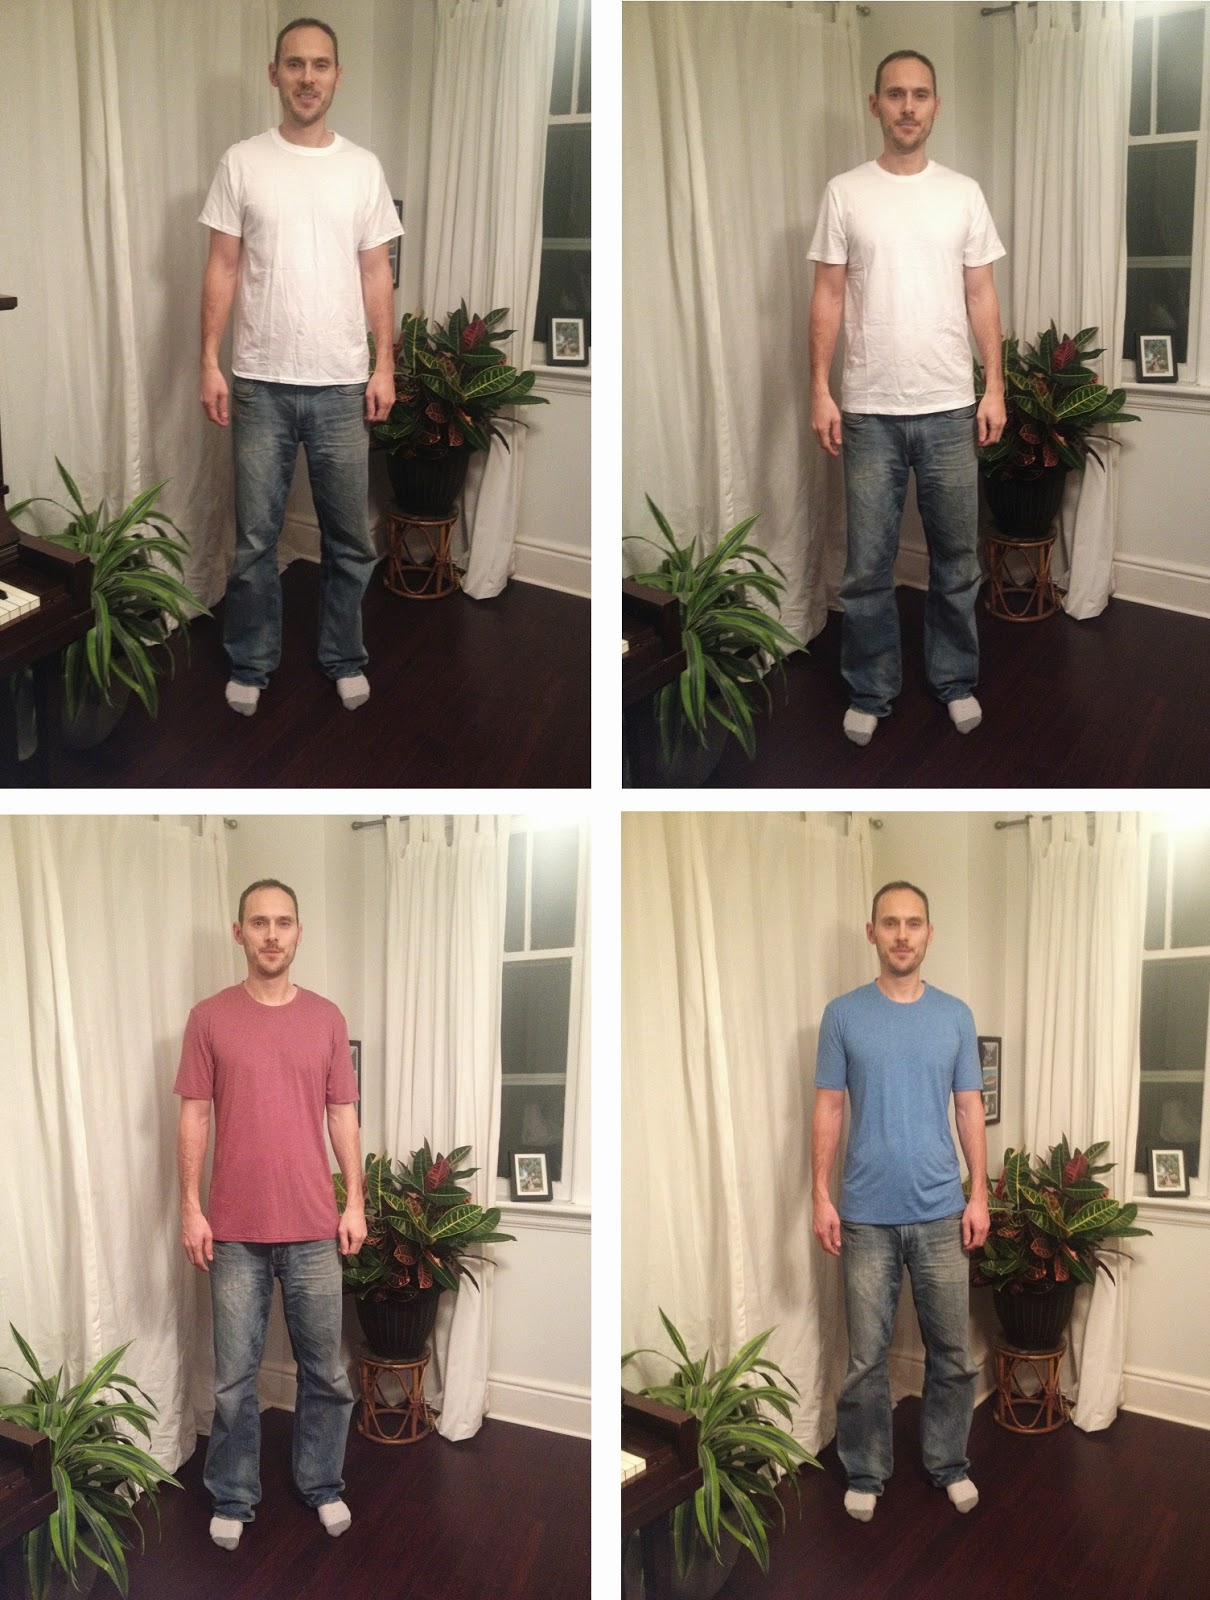 Tall Slim Tees vs Old Navy Tall T-Shirts for Tall People